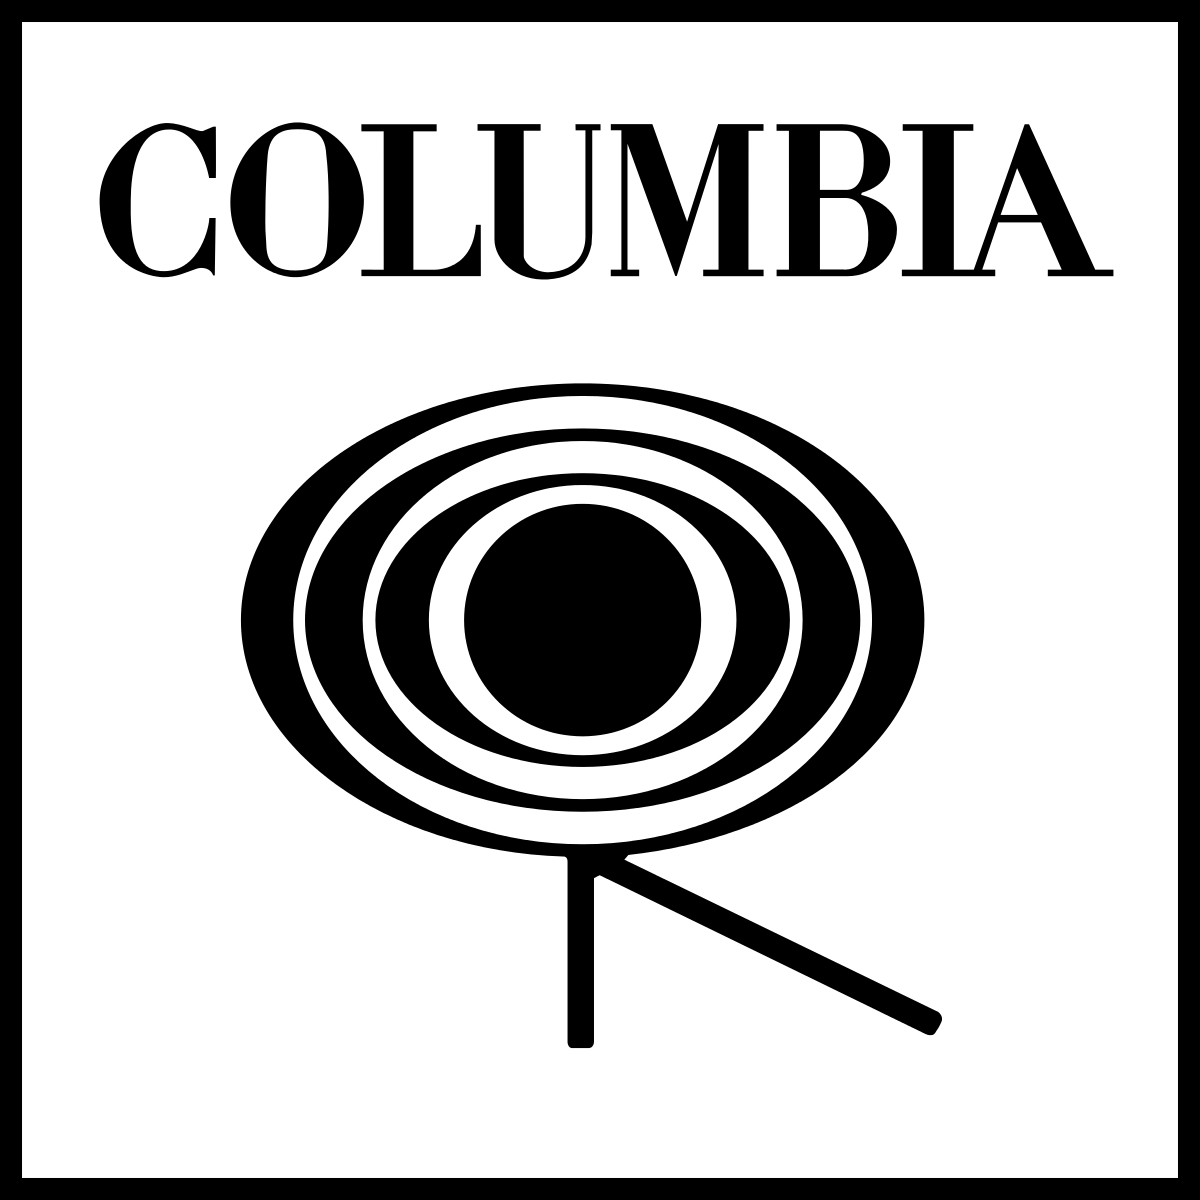 Columbia_Records_logo.png